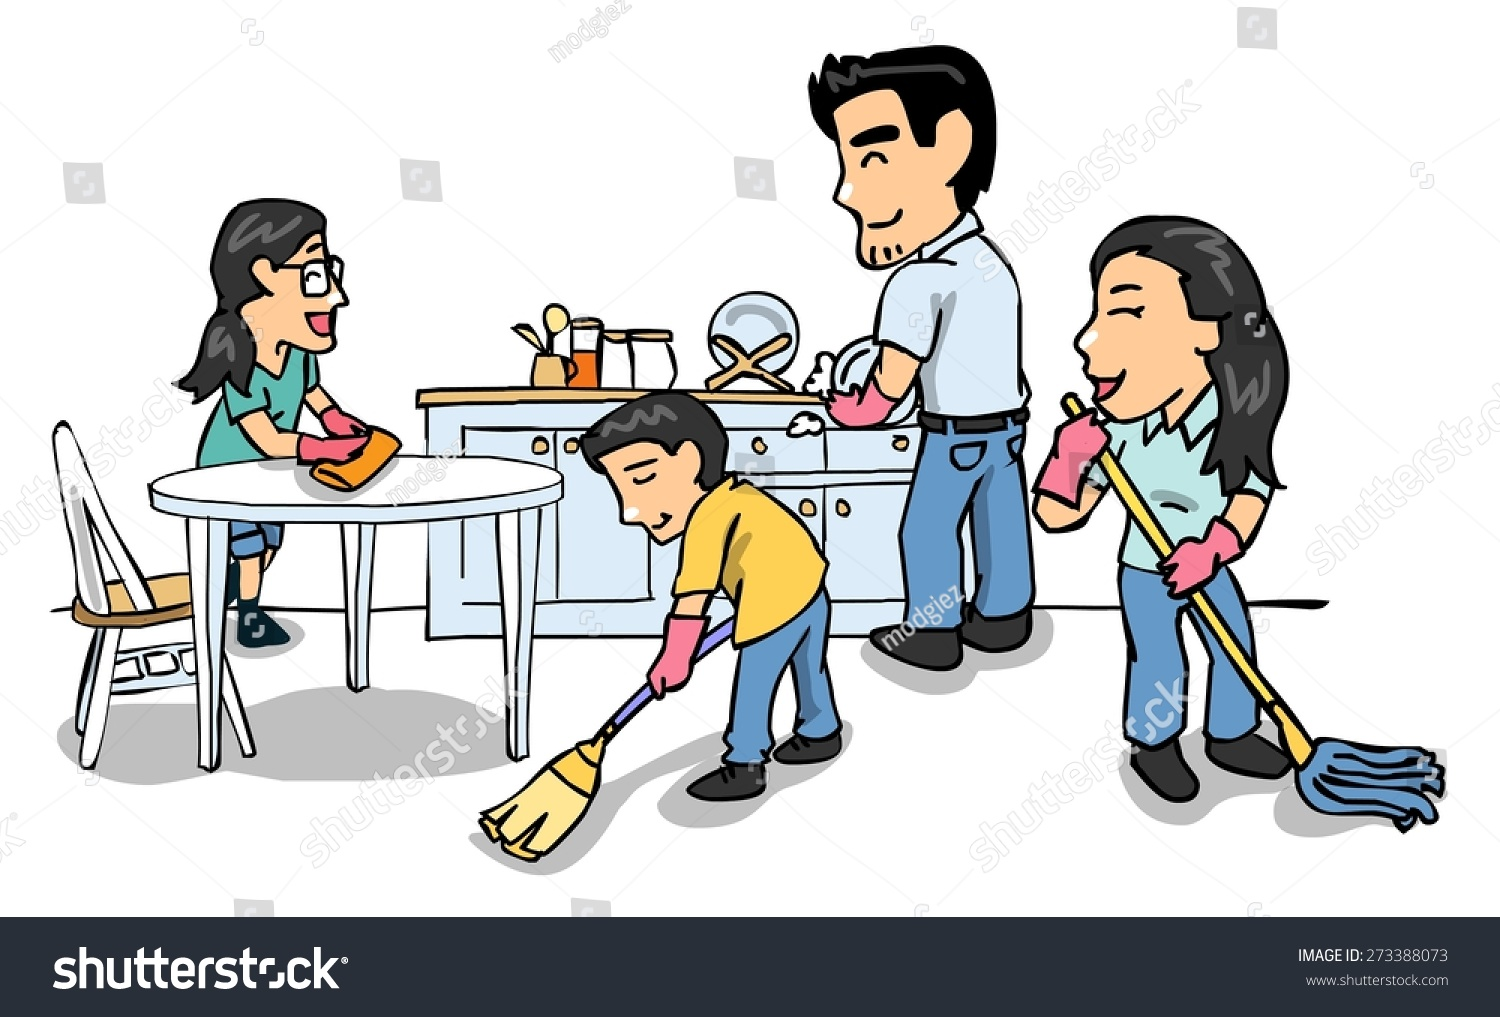 Family cleaning together clipart 6 » Clipart Station.